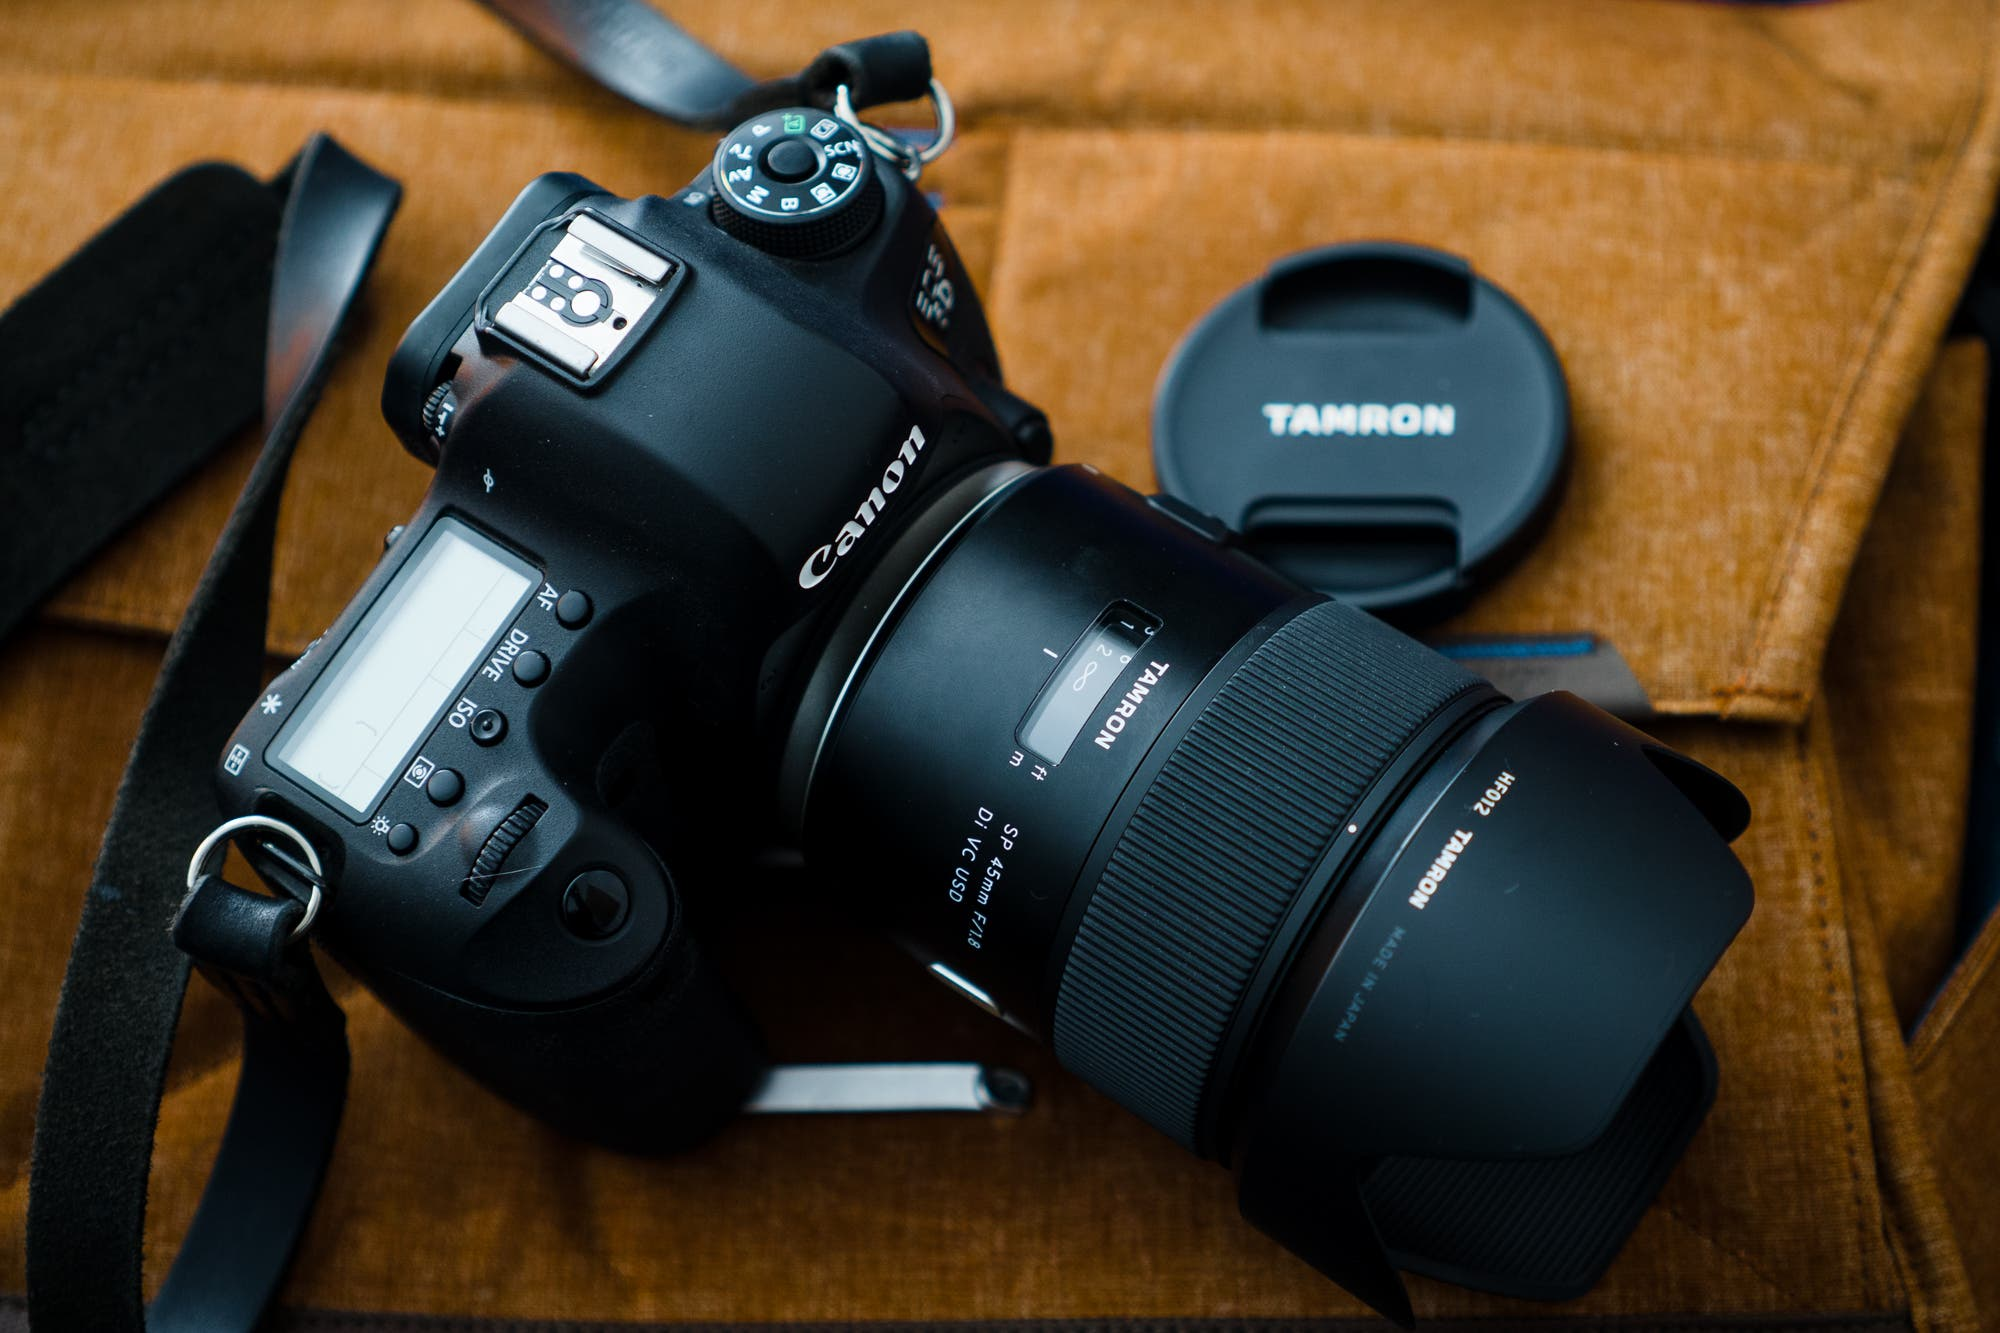 The Tamron 45mm F1.8 Di VC USD Is $200 Off, and There's More!